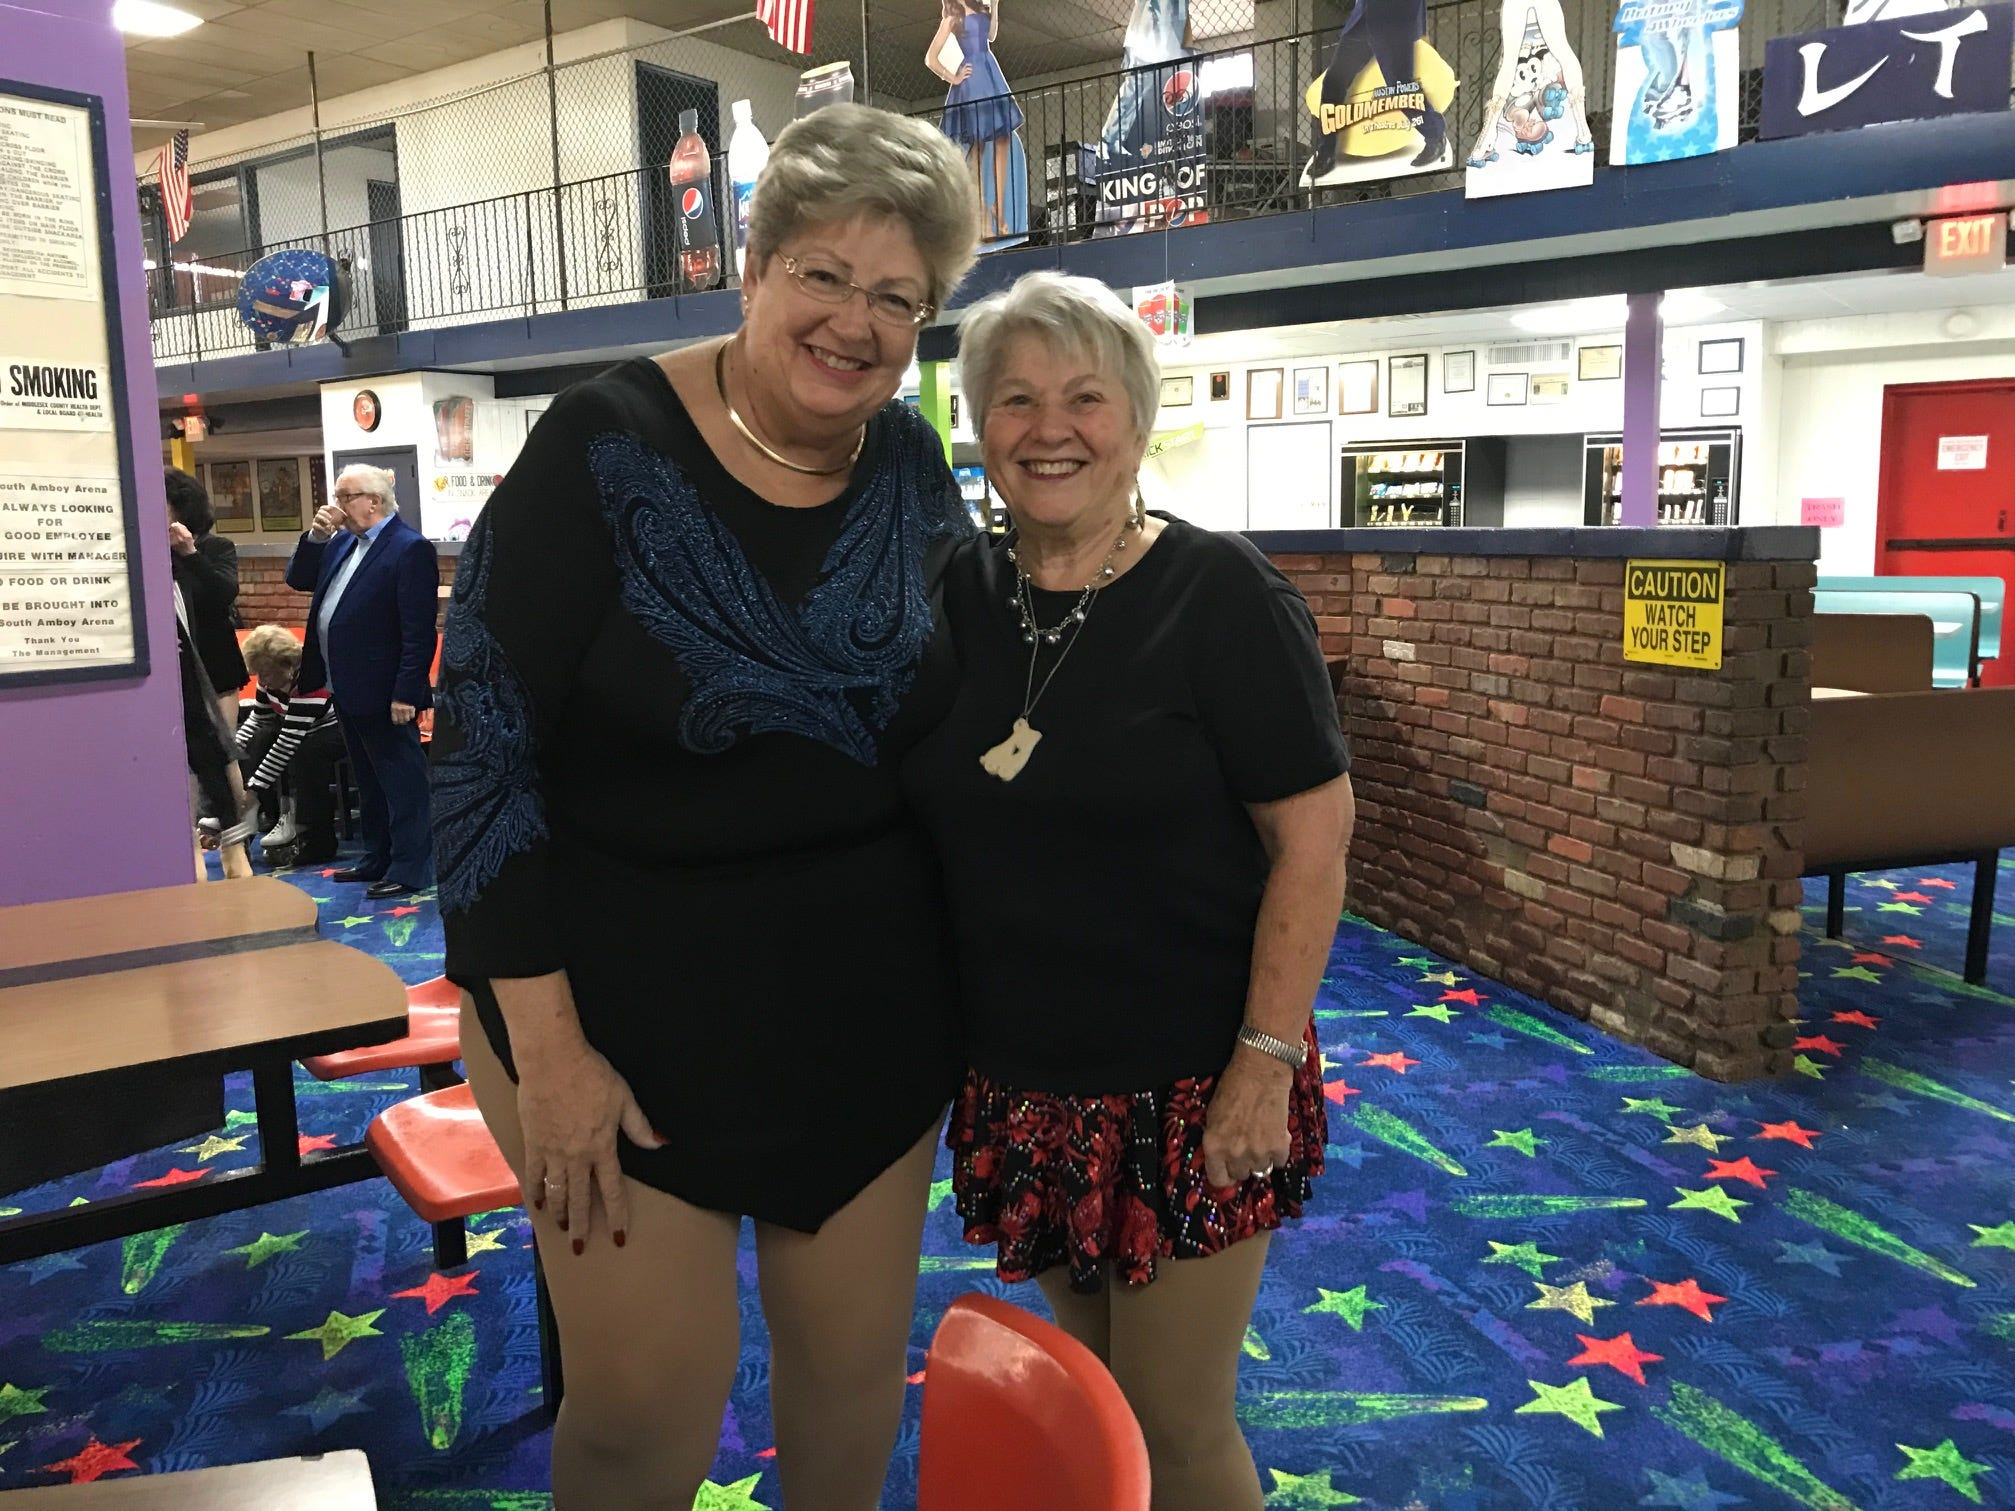 At least twice a week, more than 20 seniors, including Darlene Ostewik of Brooklyn and Joan Beviano of Linden, regularly gather at South Amboy Arenaand take to the rink for a couple hours of roller skating. They range in age from 55 to 100.